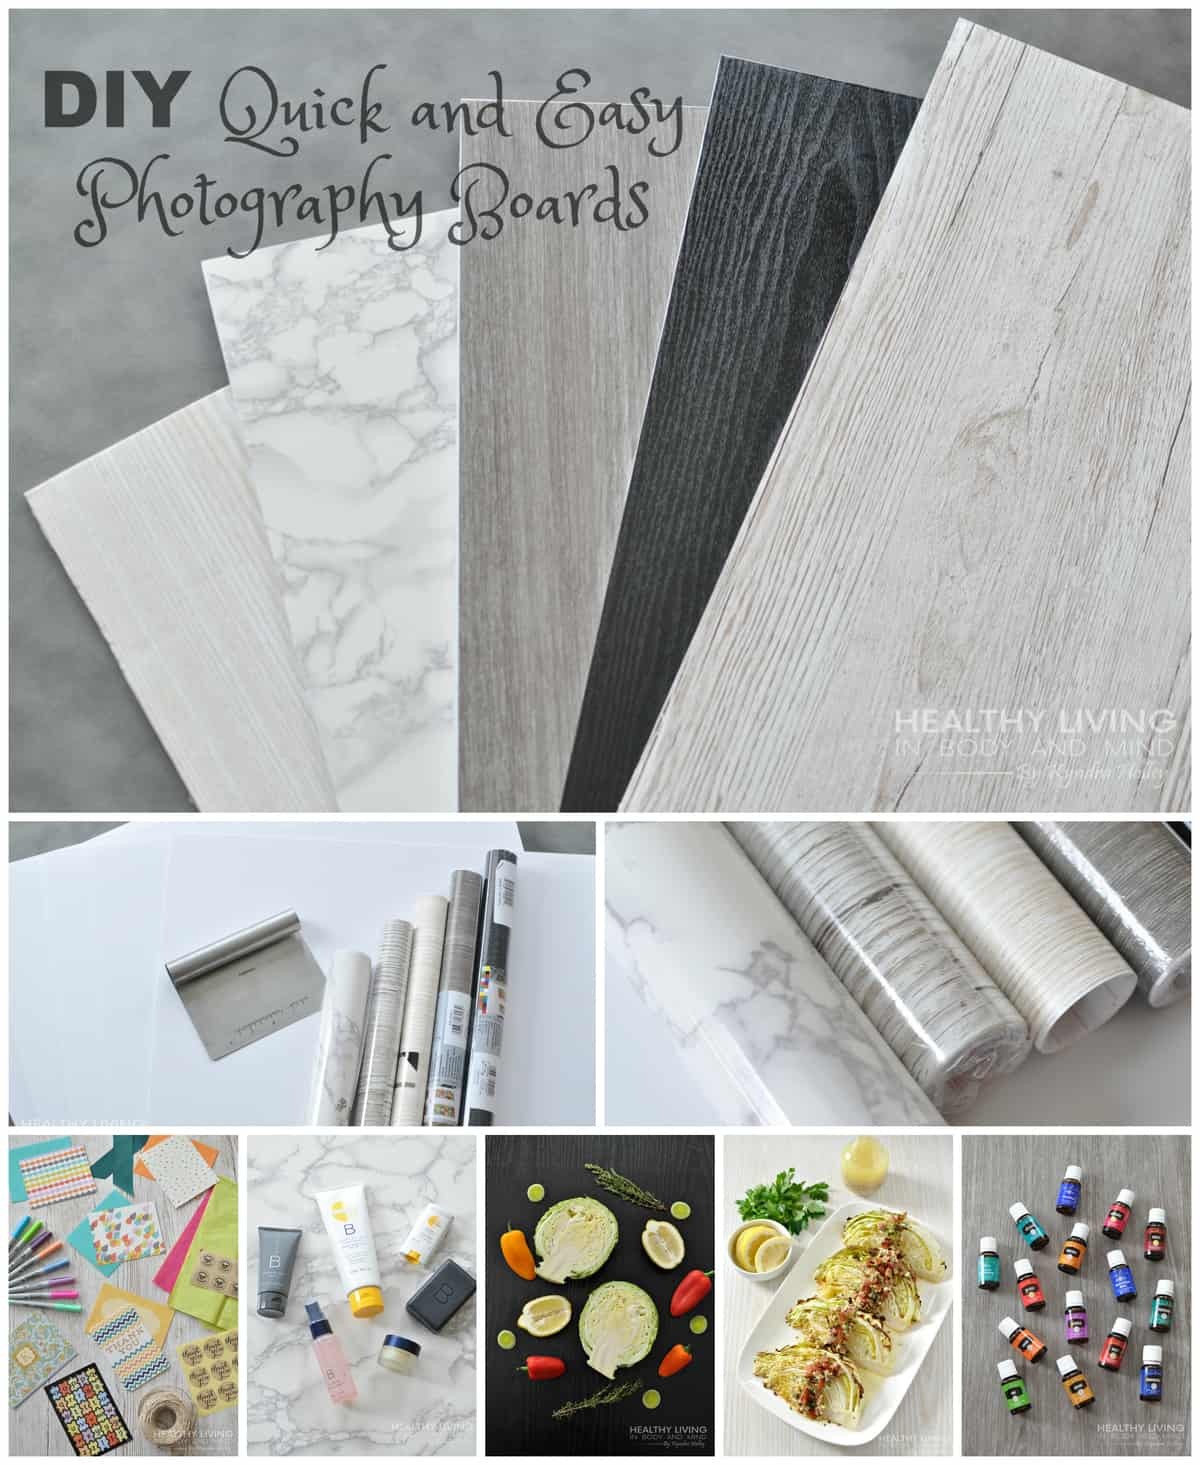 DIY Quick and Easy Photography Boards | Healthy Living in Body and Mind